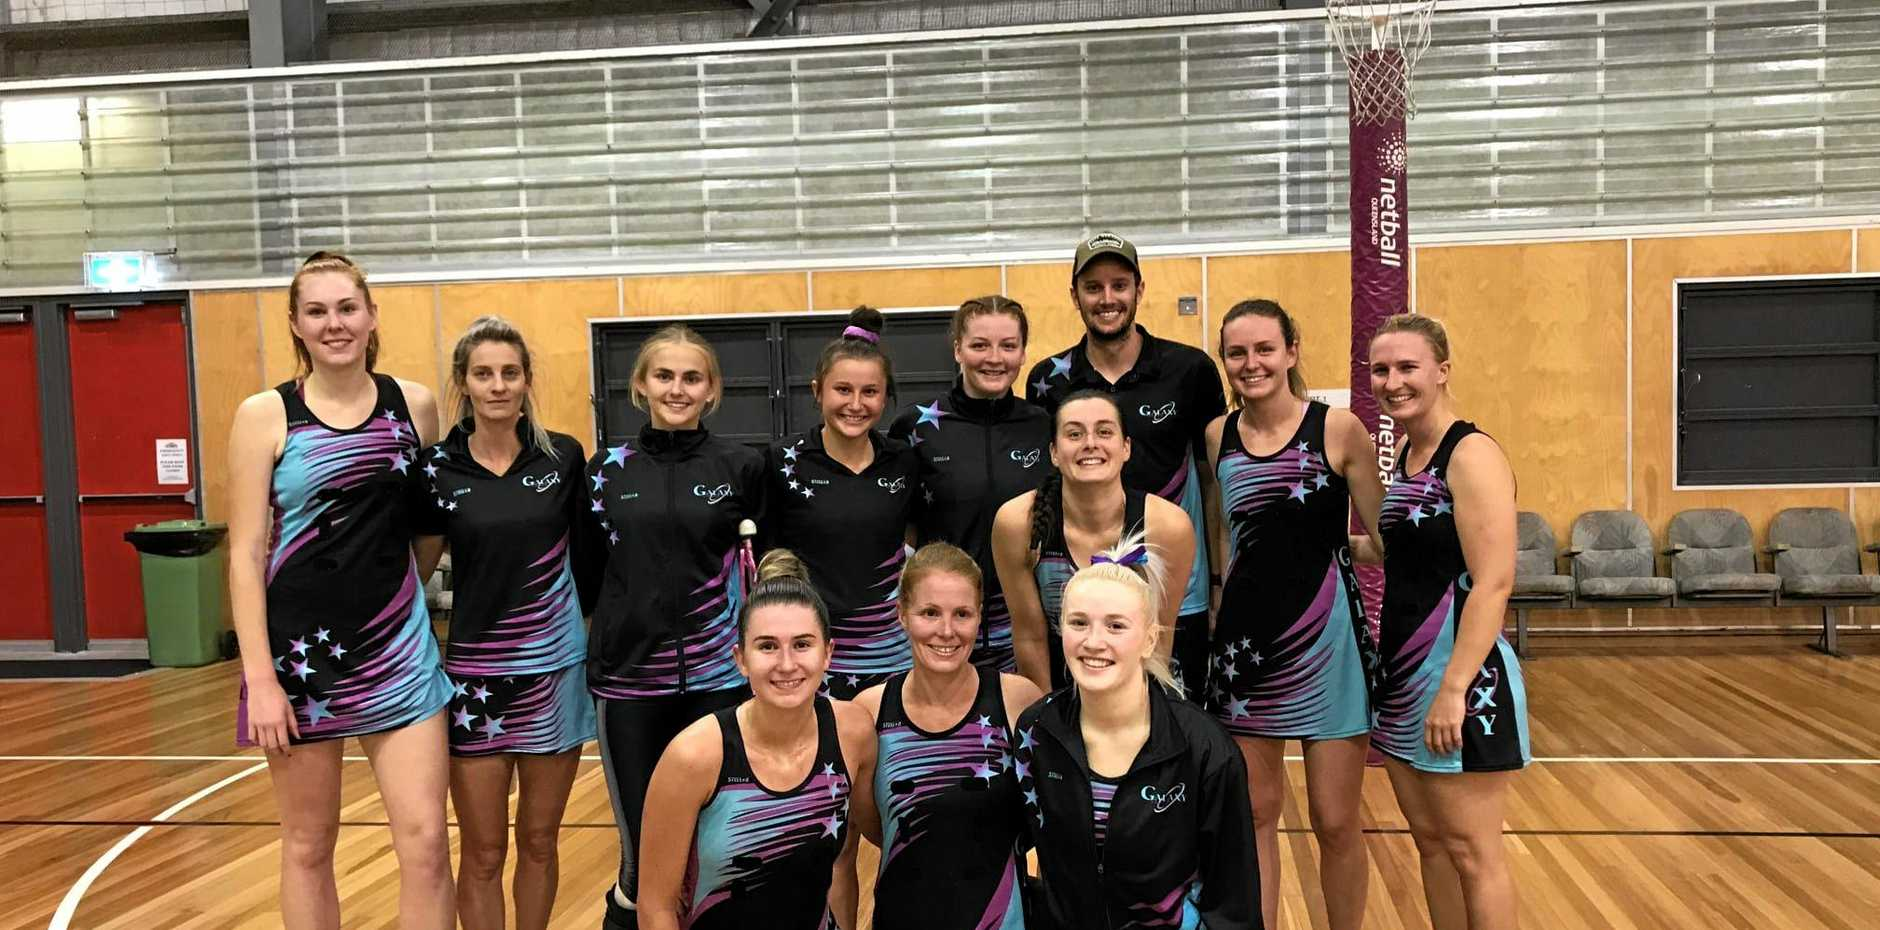 The Galaxy premier netball team became the 2019 premiers after a 36-31 win over Storm on Saturday.